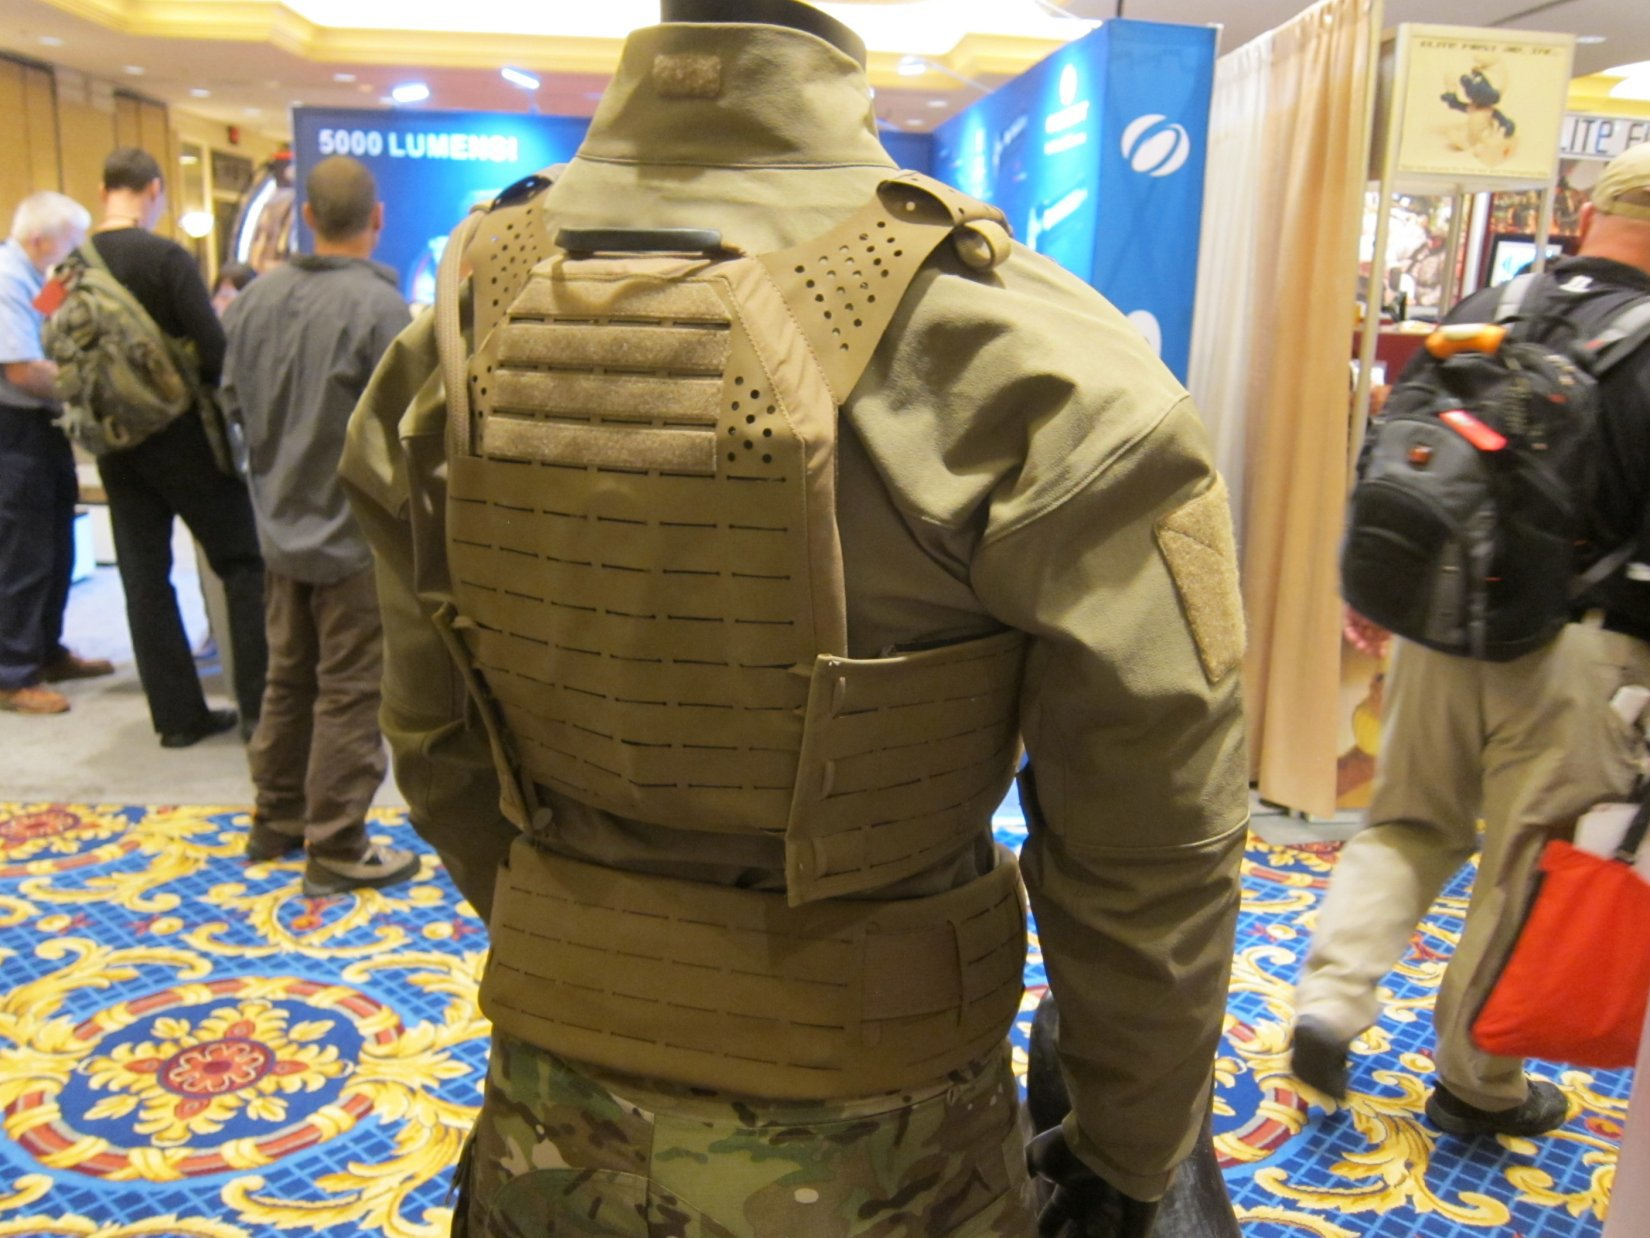 ArmorWorks Modular Plate Carrier MPC Tactical Armor Plate Carrier Alex Gallo SHOT Show 2012 DefenseReview.com DR 3 ArmorWorks Modular Plate Carrier (MPC): Scalable High Tech Minimalist/Low Profile Tactical Armor Plate Carrier (Military Body Armor) with SOURCE Tactical Hydration/Water Bladder System and Super Strong Polymer Non MOLLE MOLLE/PALS Webbing System and Shoulder Straps at SHOT Show 2012 (Video!)